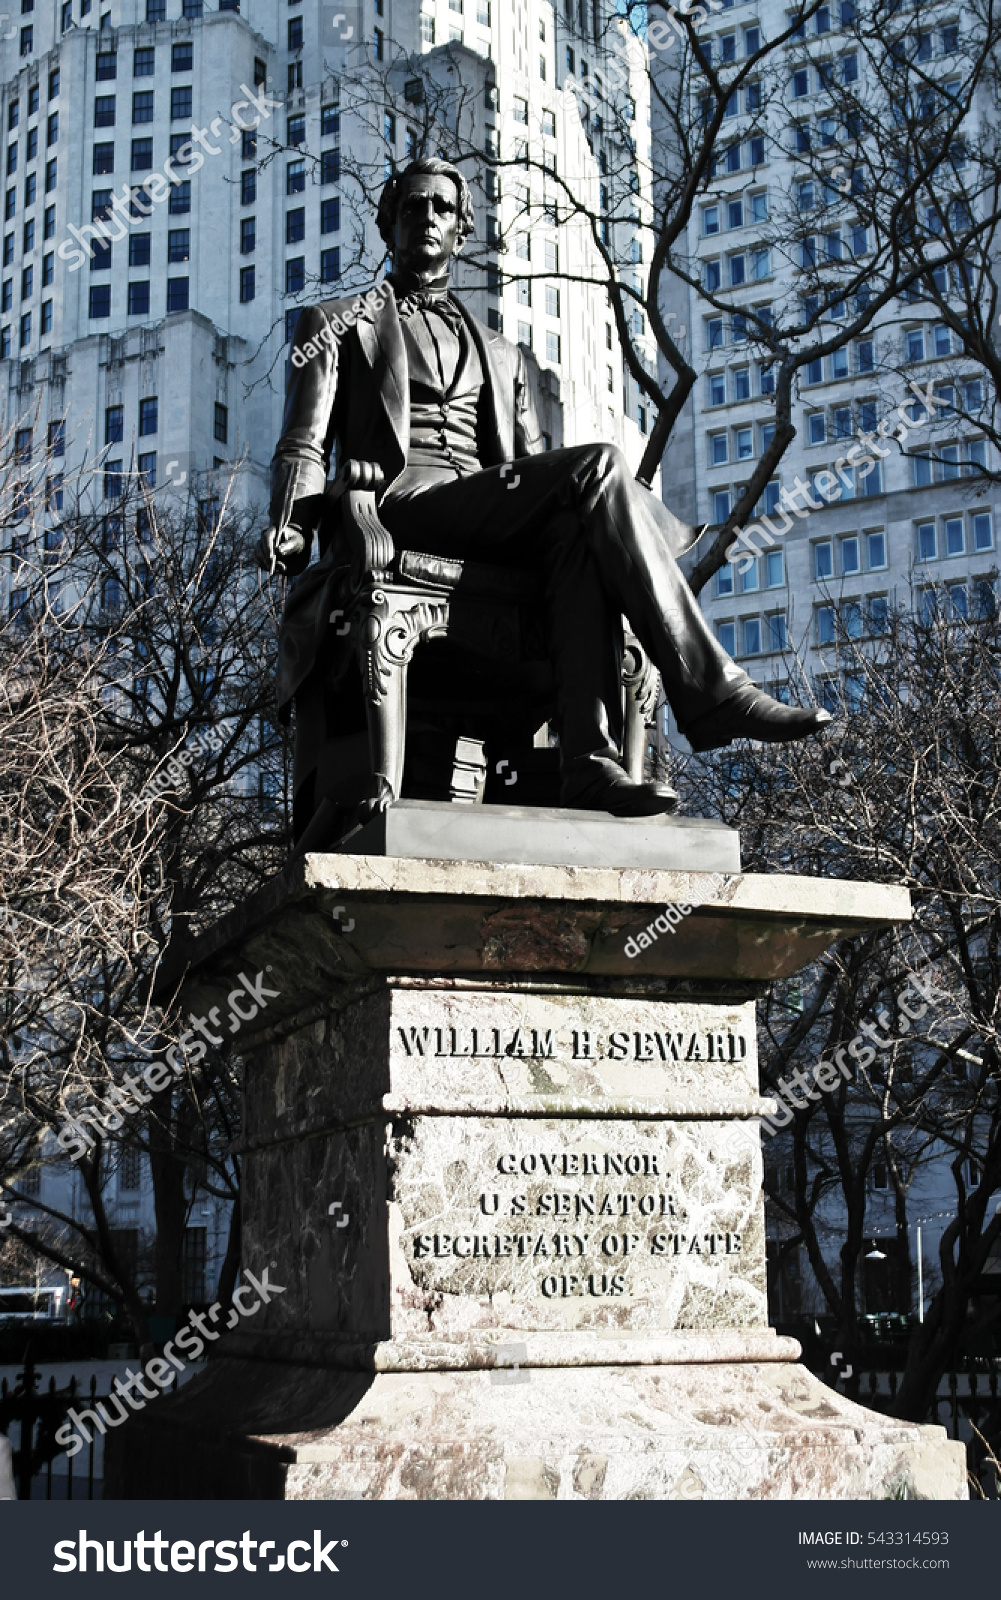 New York City, Manhattan William H. Seward governor statue.